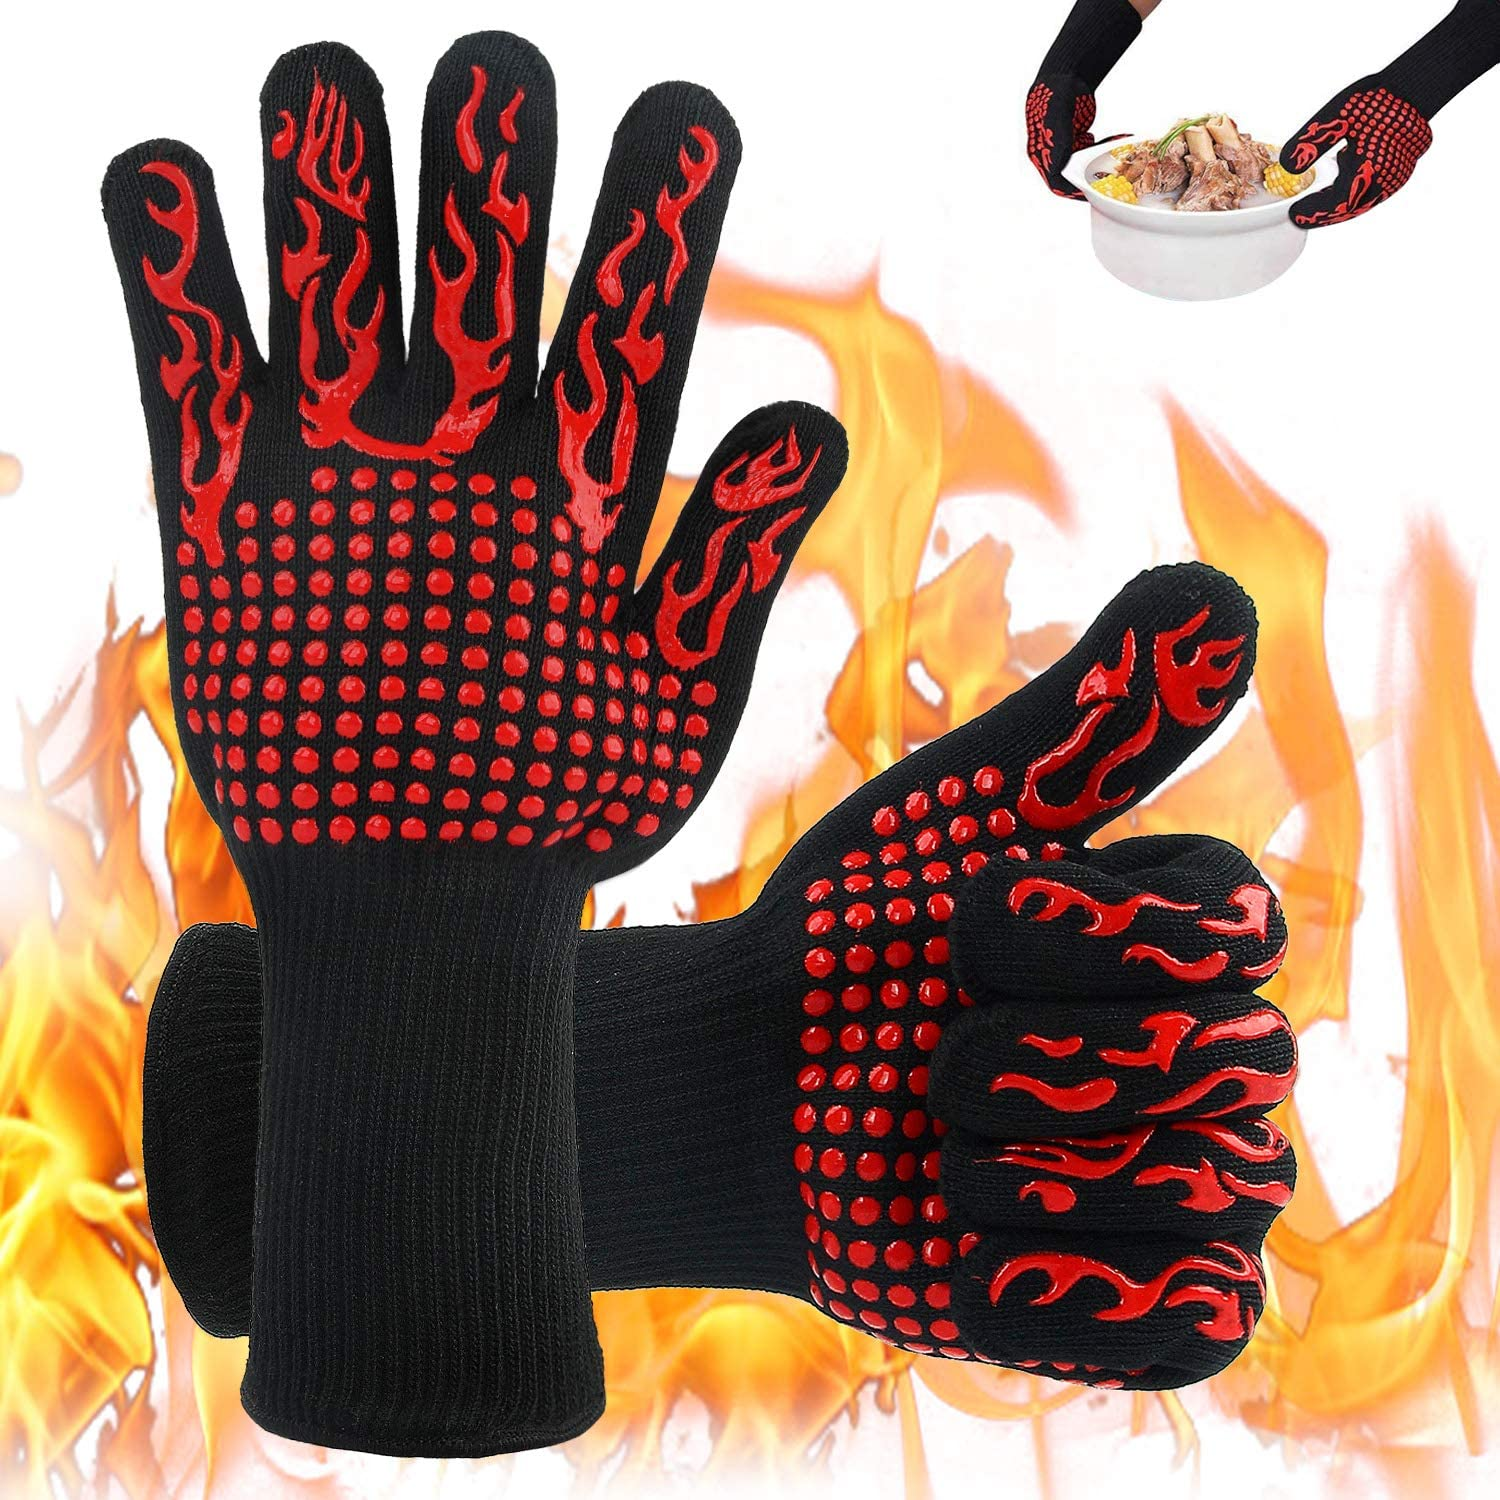 Acecharming BBQ Gloves, 1472℉ Outdoor Cooking Heat Resistant for Smoker, Barbecue, Grill, Frying, Grilling Gloves Silicone Oven Mitts – Fits Most